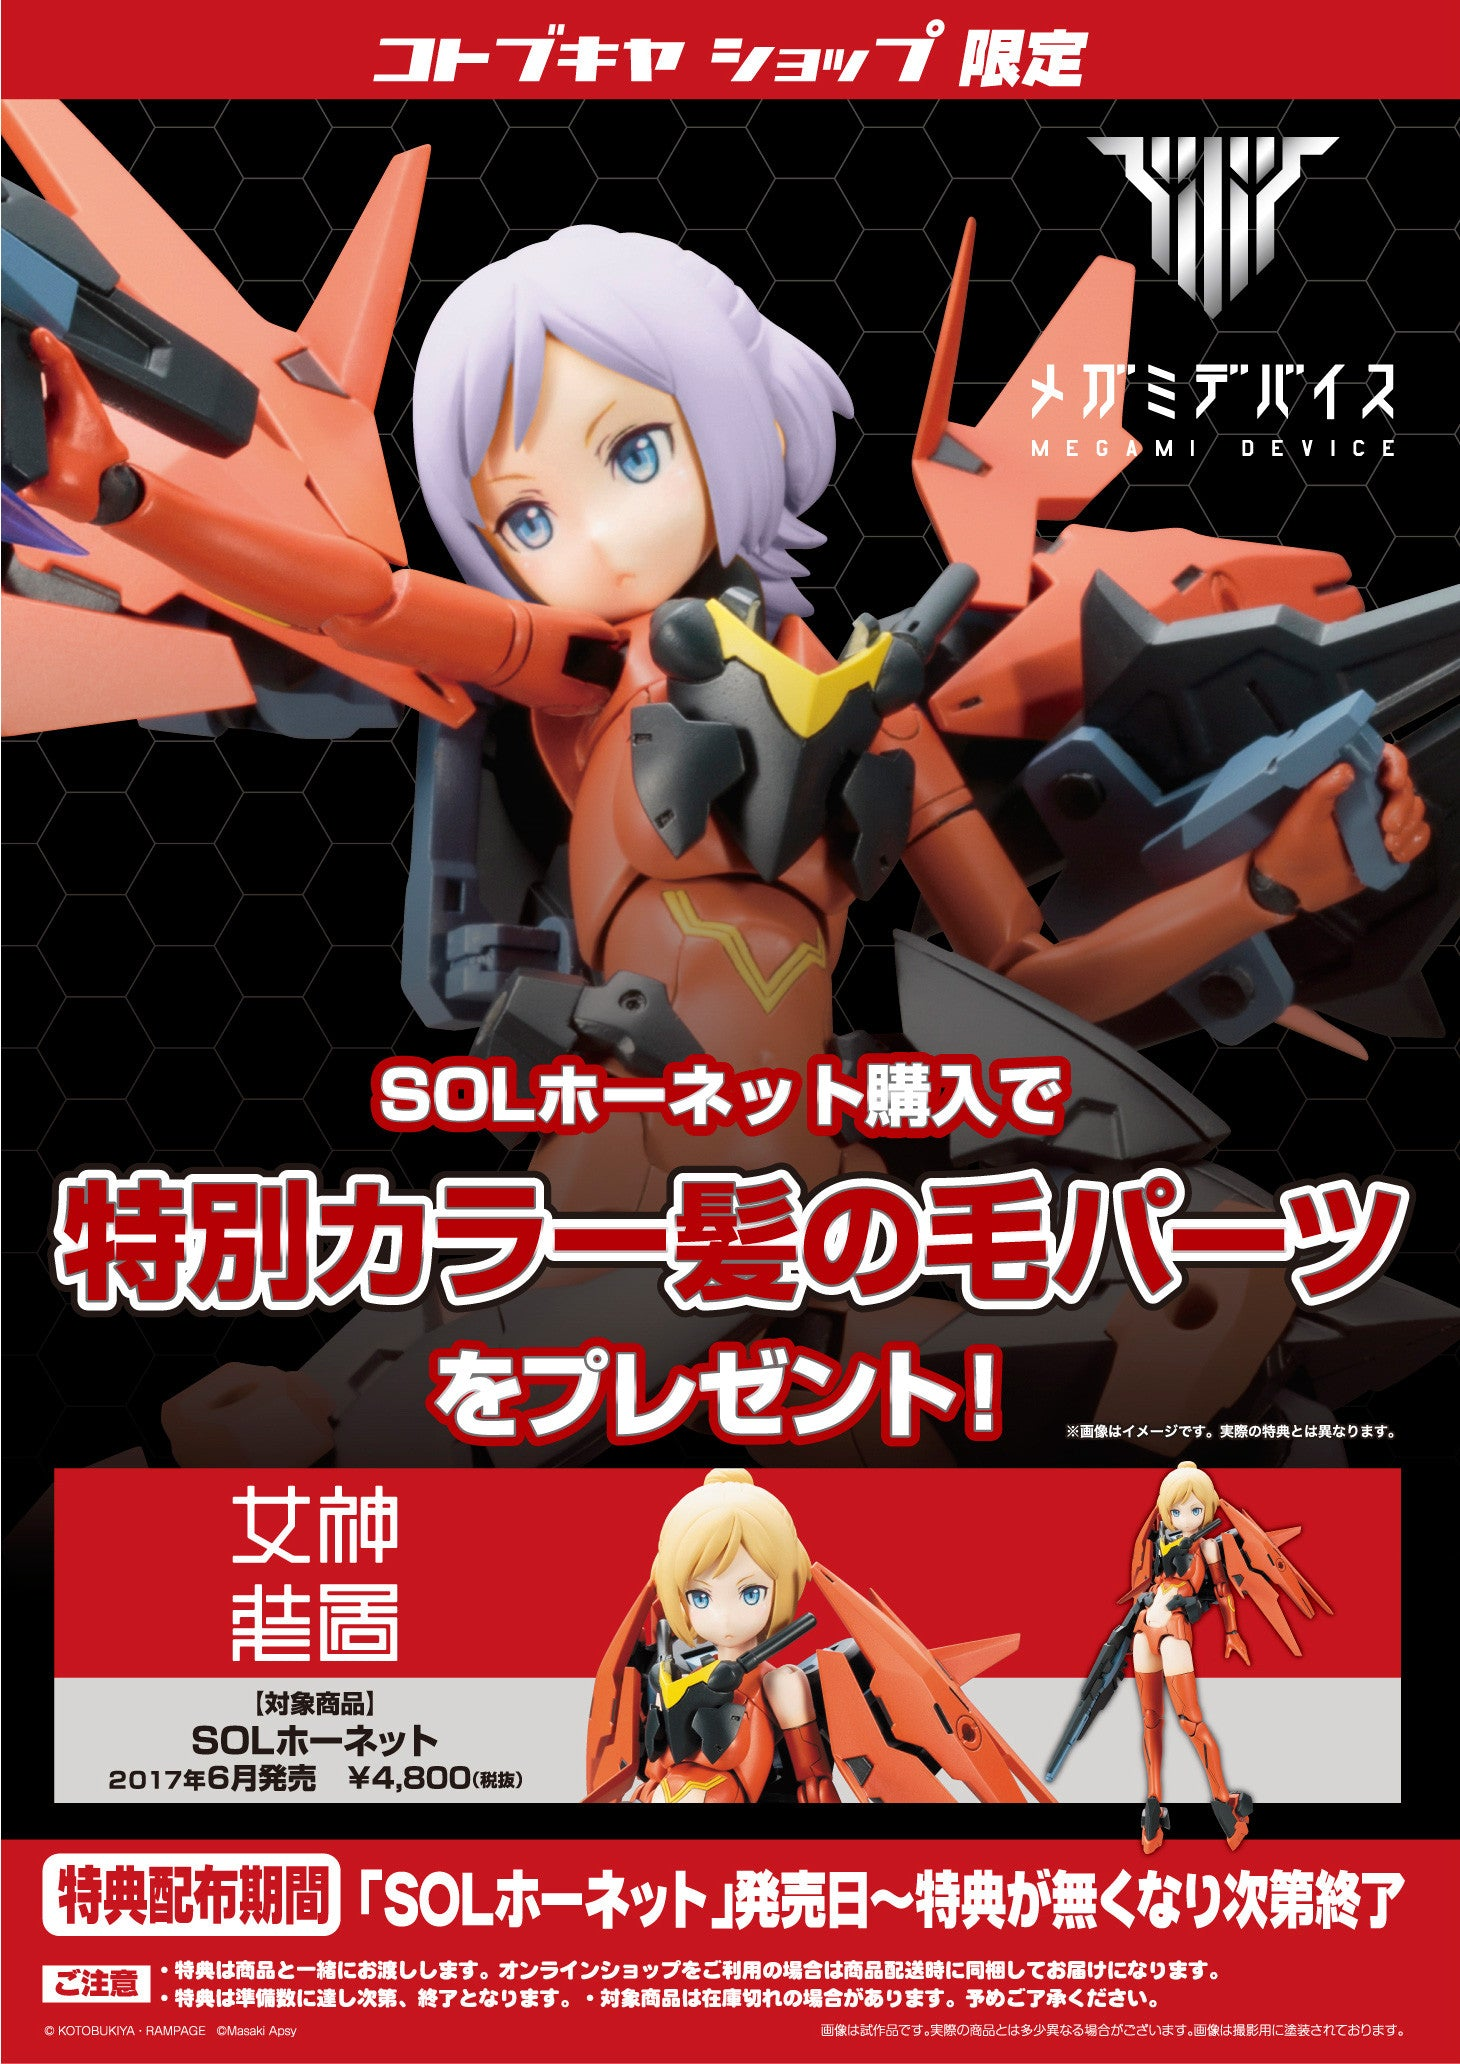 Image 2 for Megami Device - SOL Hornet - 1/1 - Kotobukiya Limited